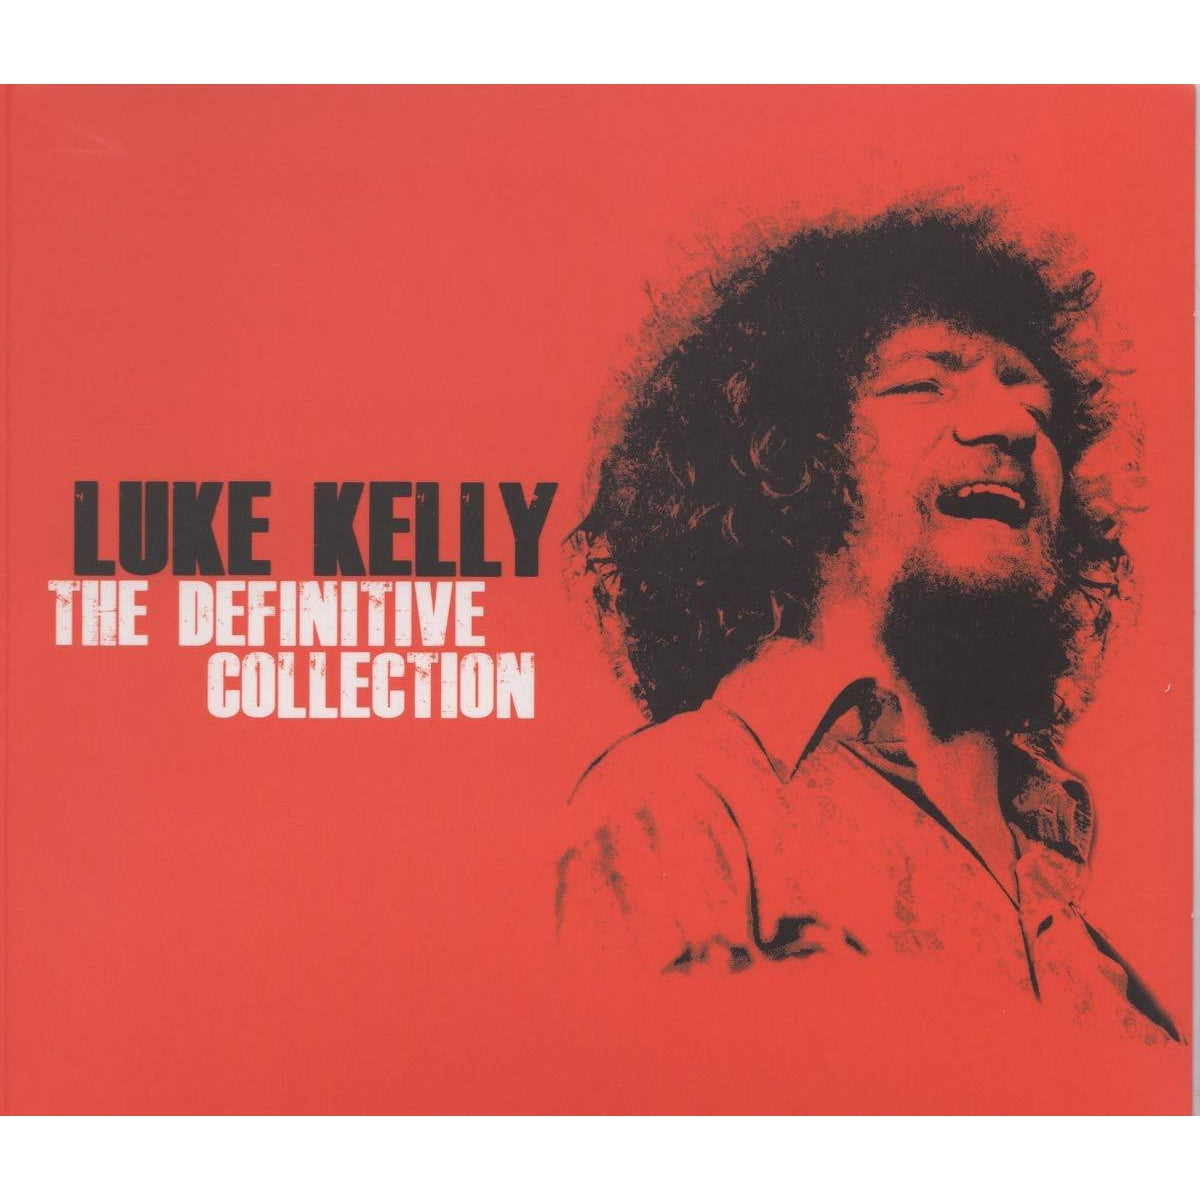 The Definitive Collection: Luke Kelly [CD]